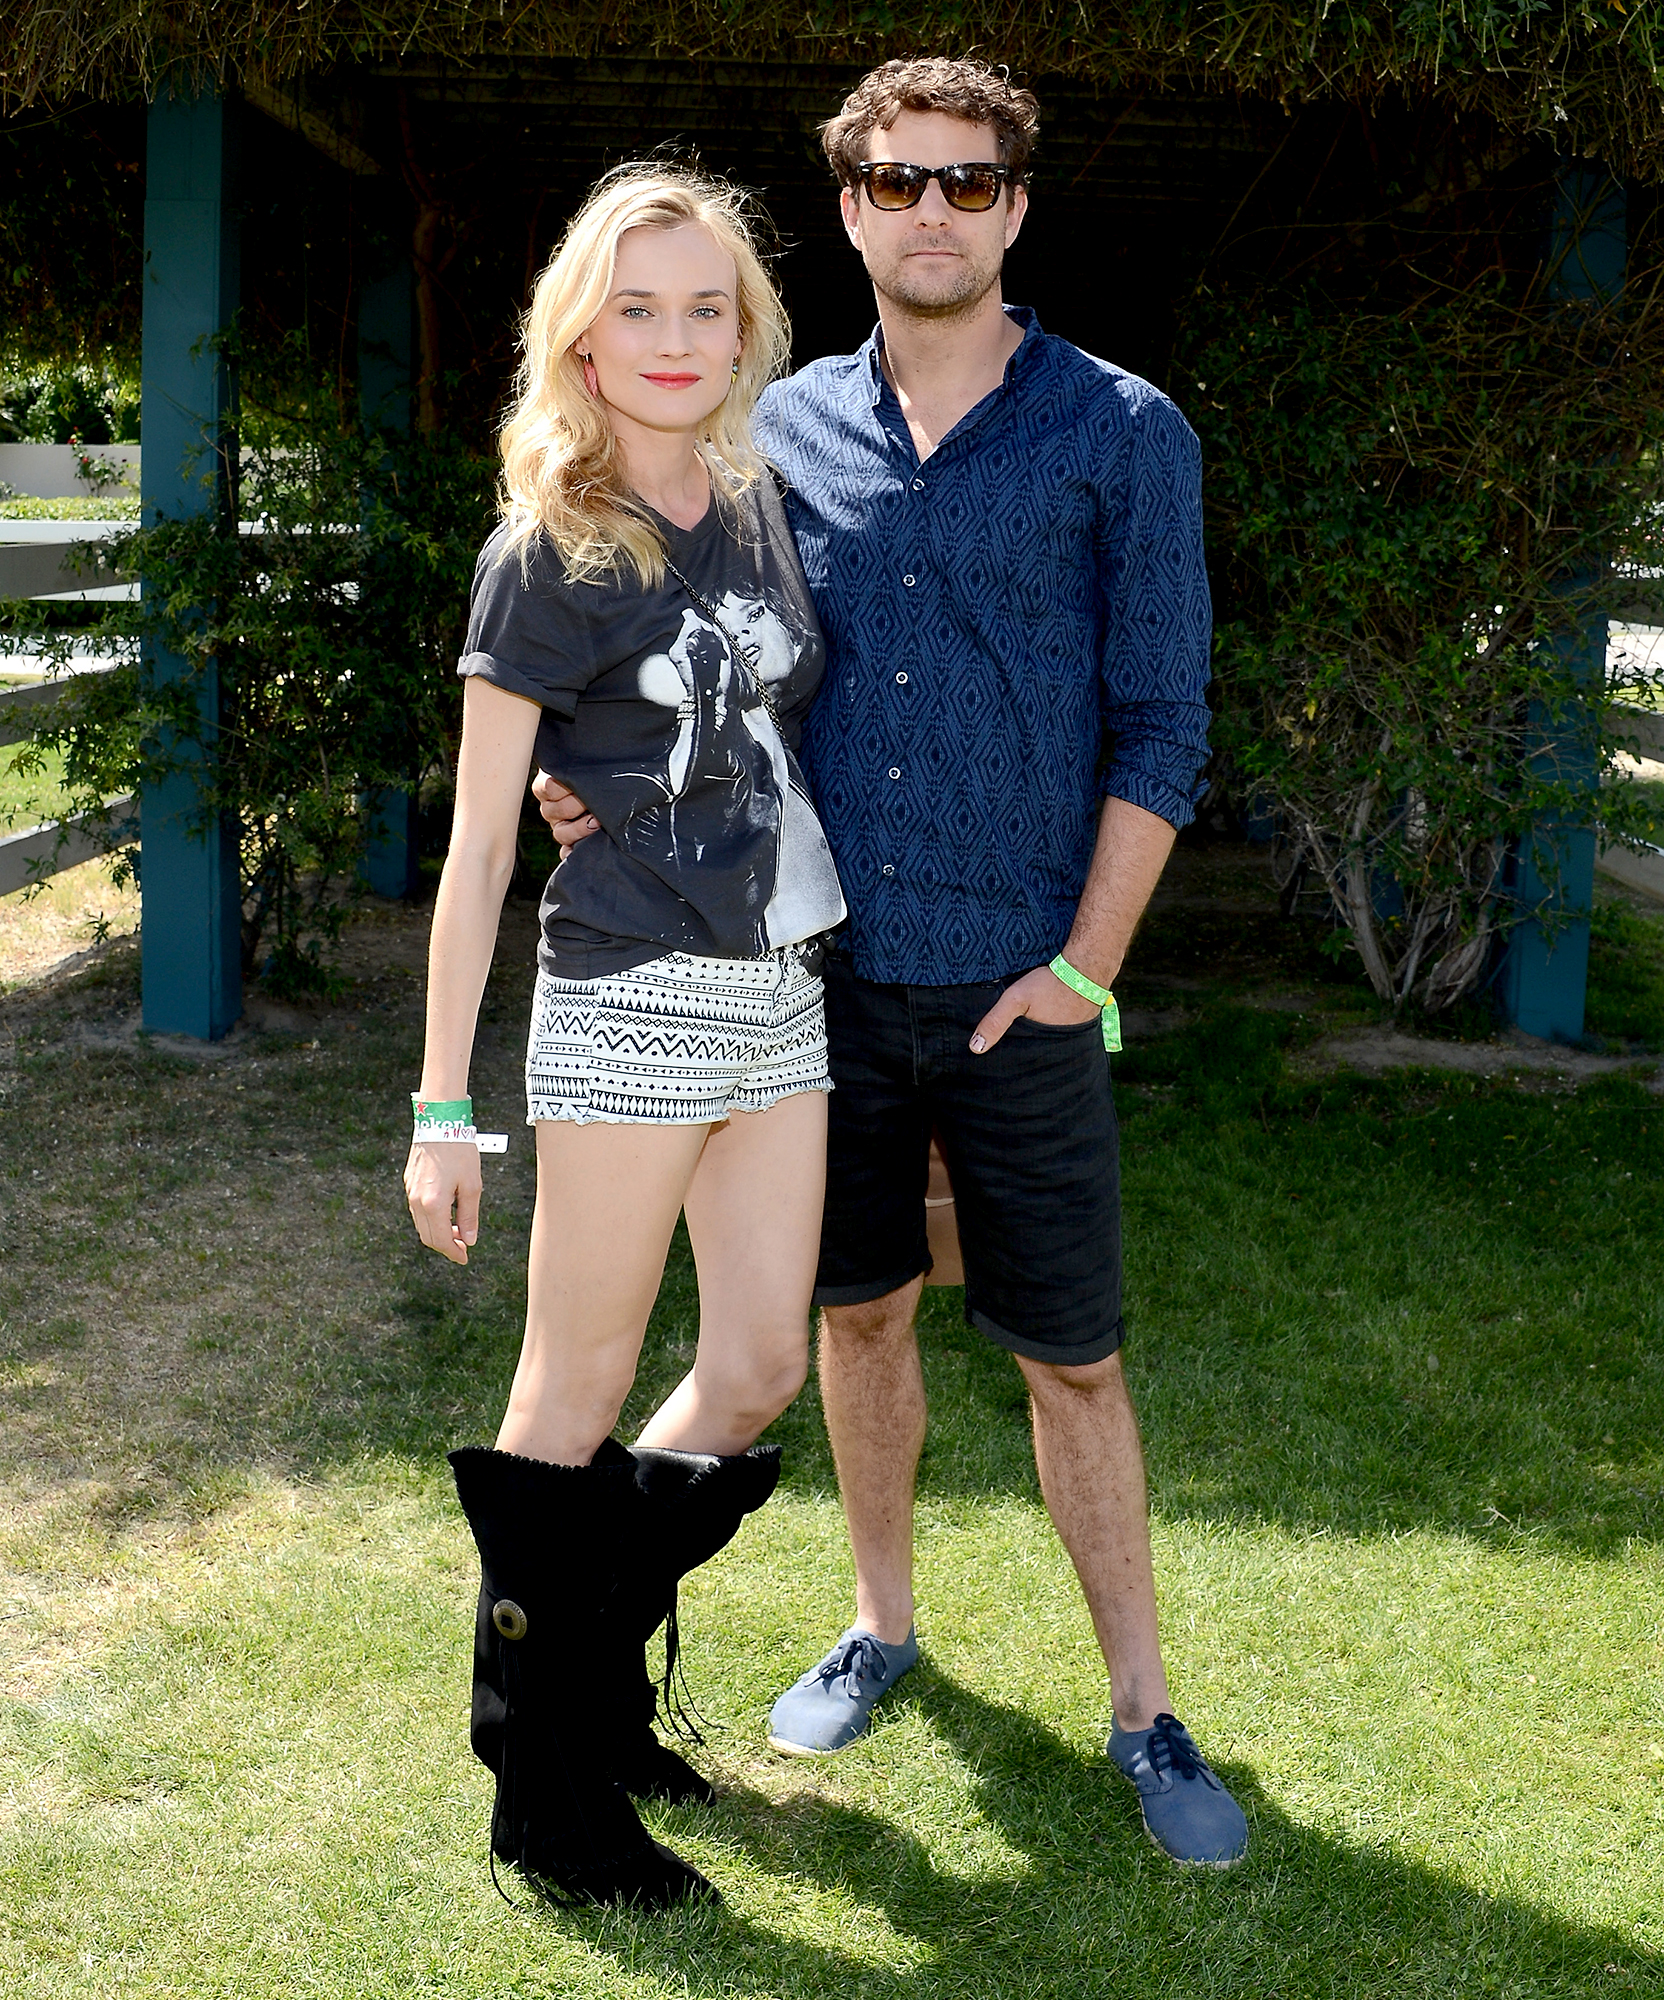 Diane-Kruger-and-Joshua-Jackson-coachella - The Inglourious Basterds actress and the Affair star helped kick off Coachella at the H&M Loves Music event in 2013.